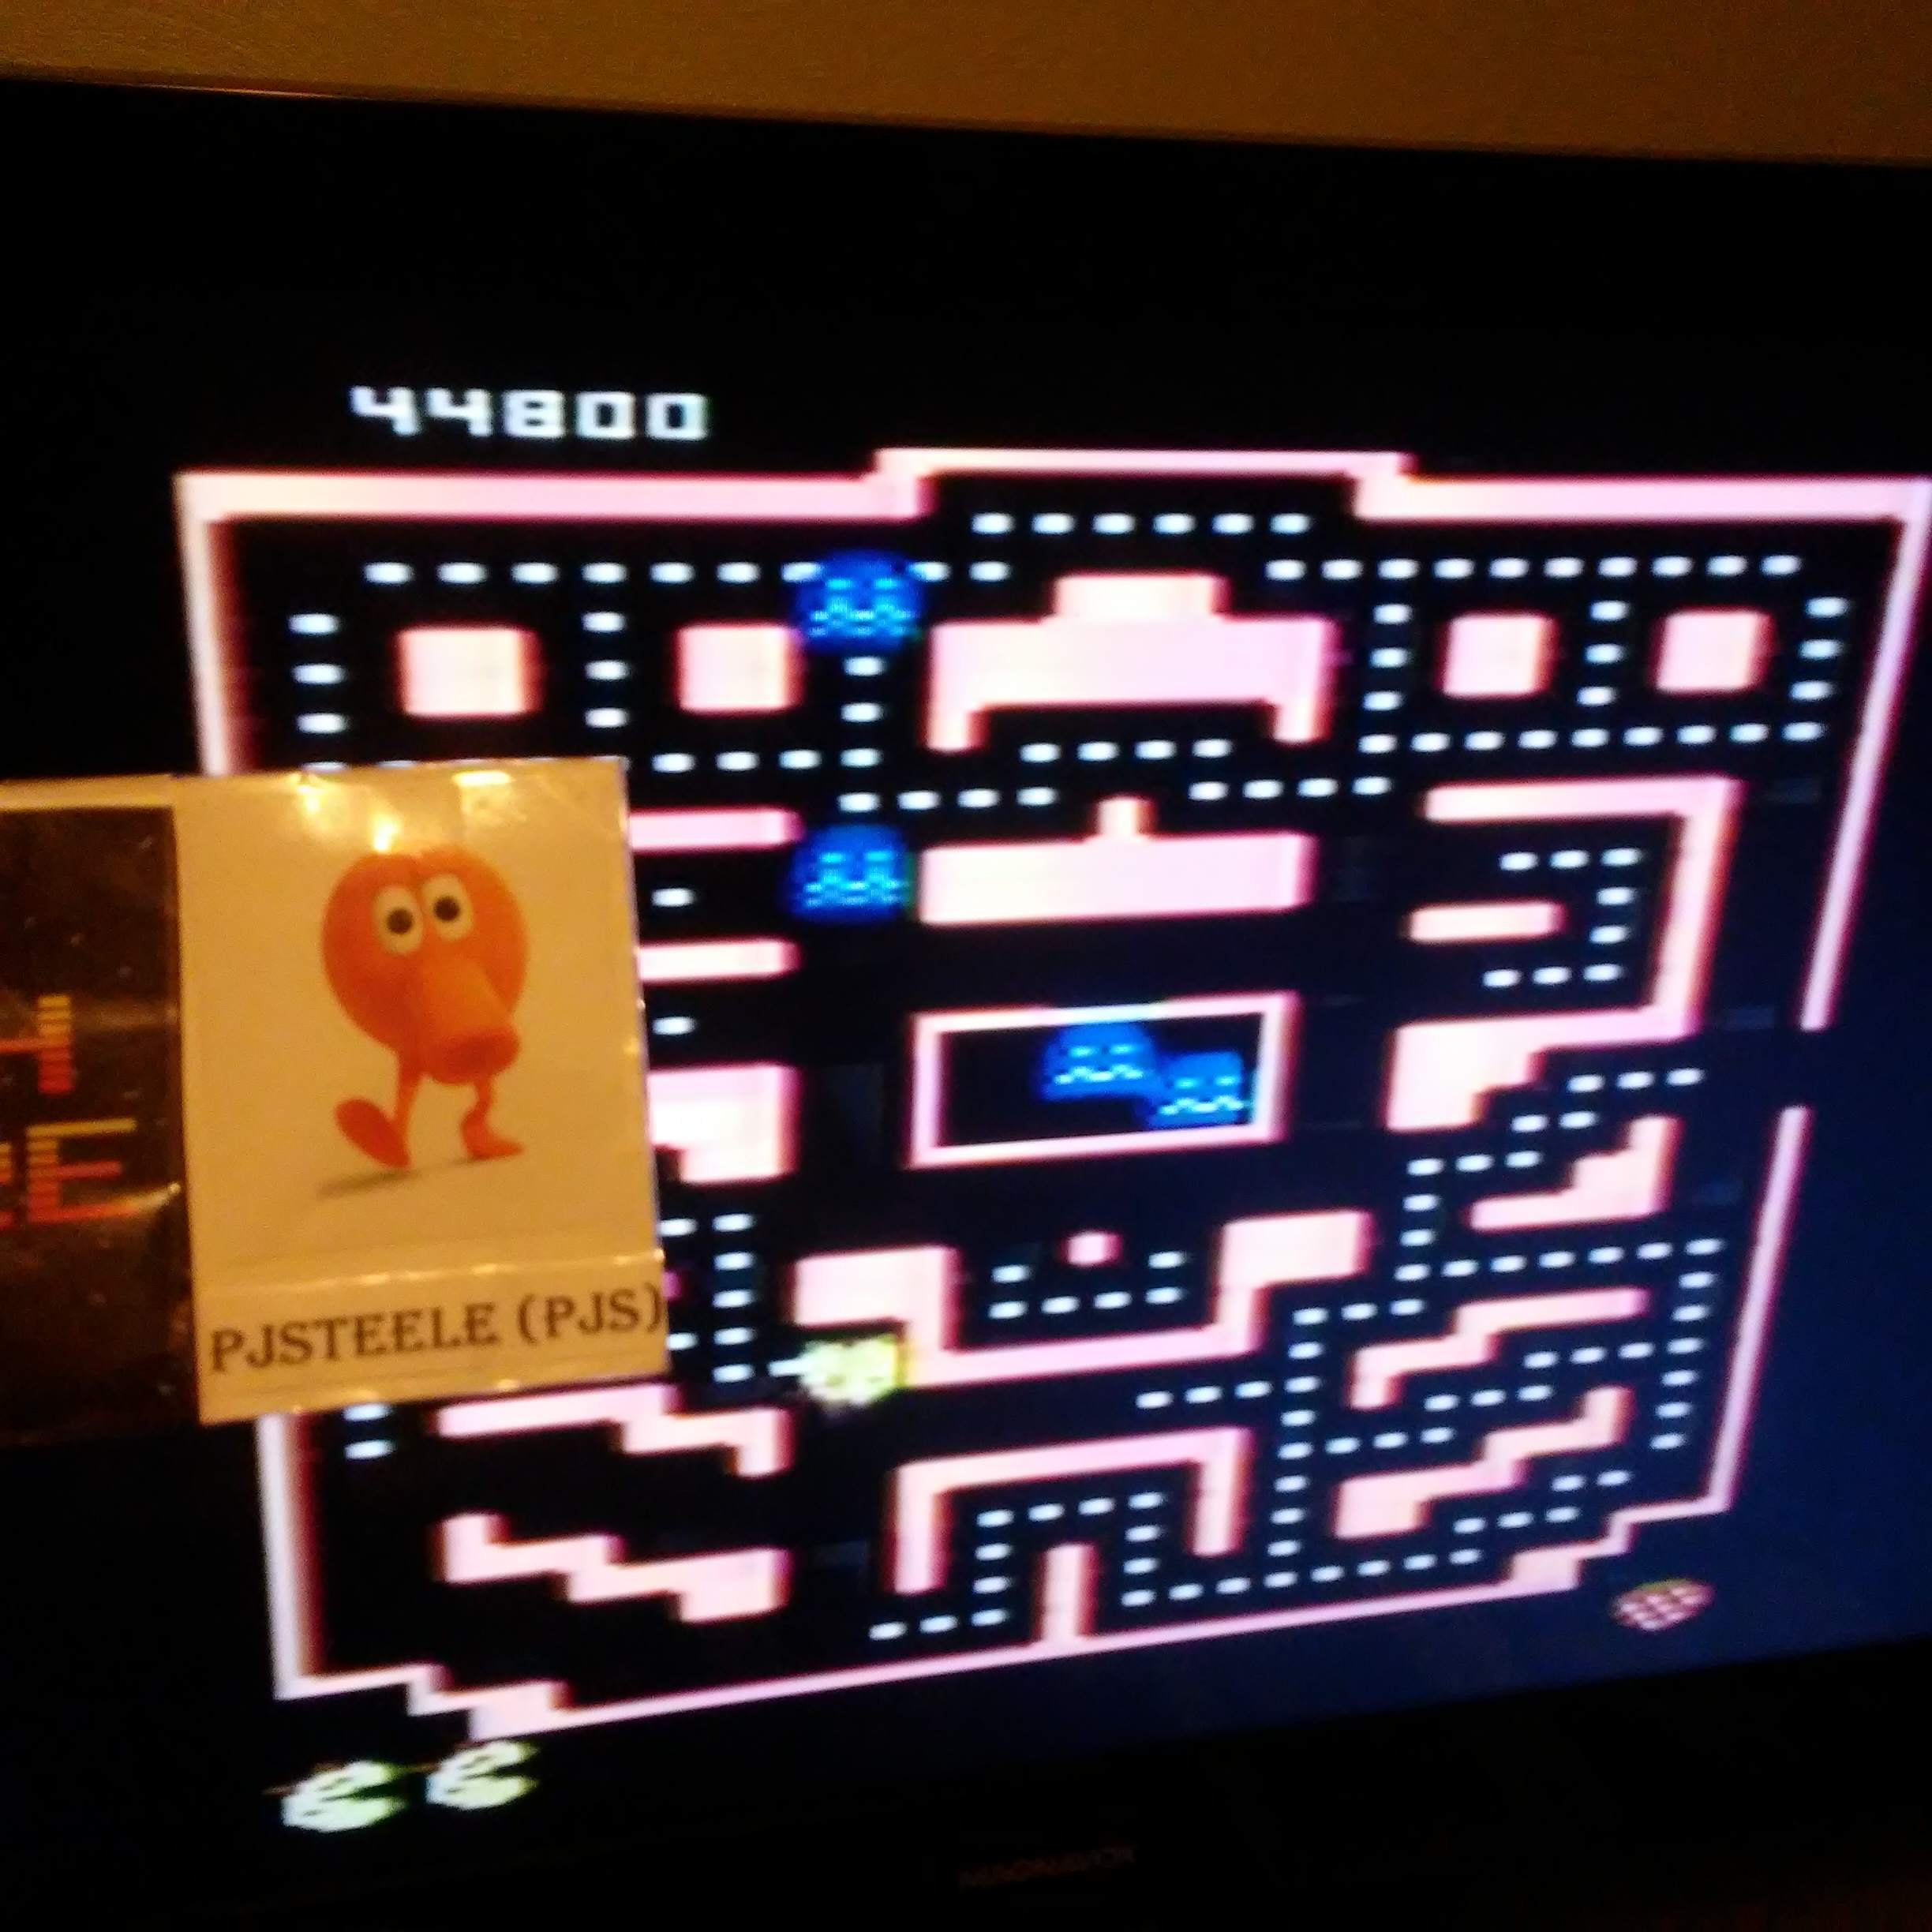 Pjsteele: Pac-Man Collection: Ms. Pac-Attack [Strawberry/Plus Off/Fast On] (Atari 7800) 44,800 points on 2018-09-18 21:05:53